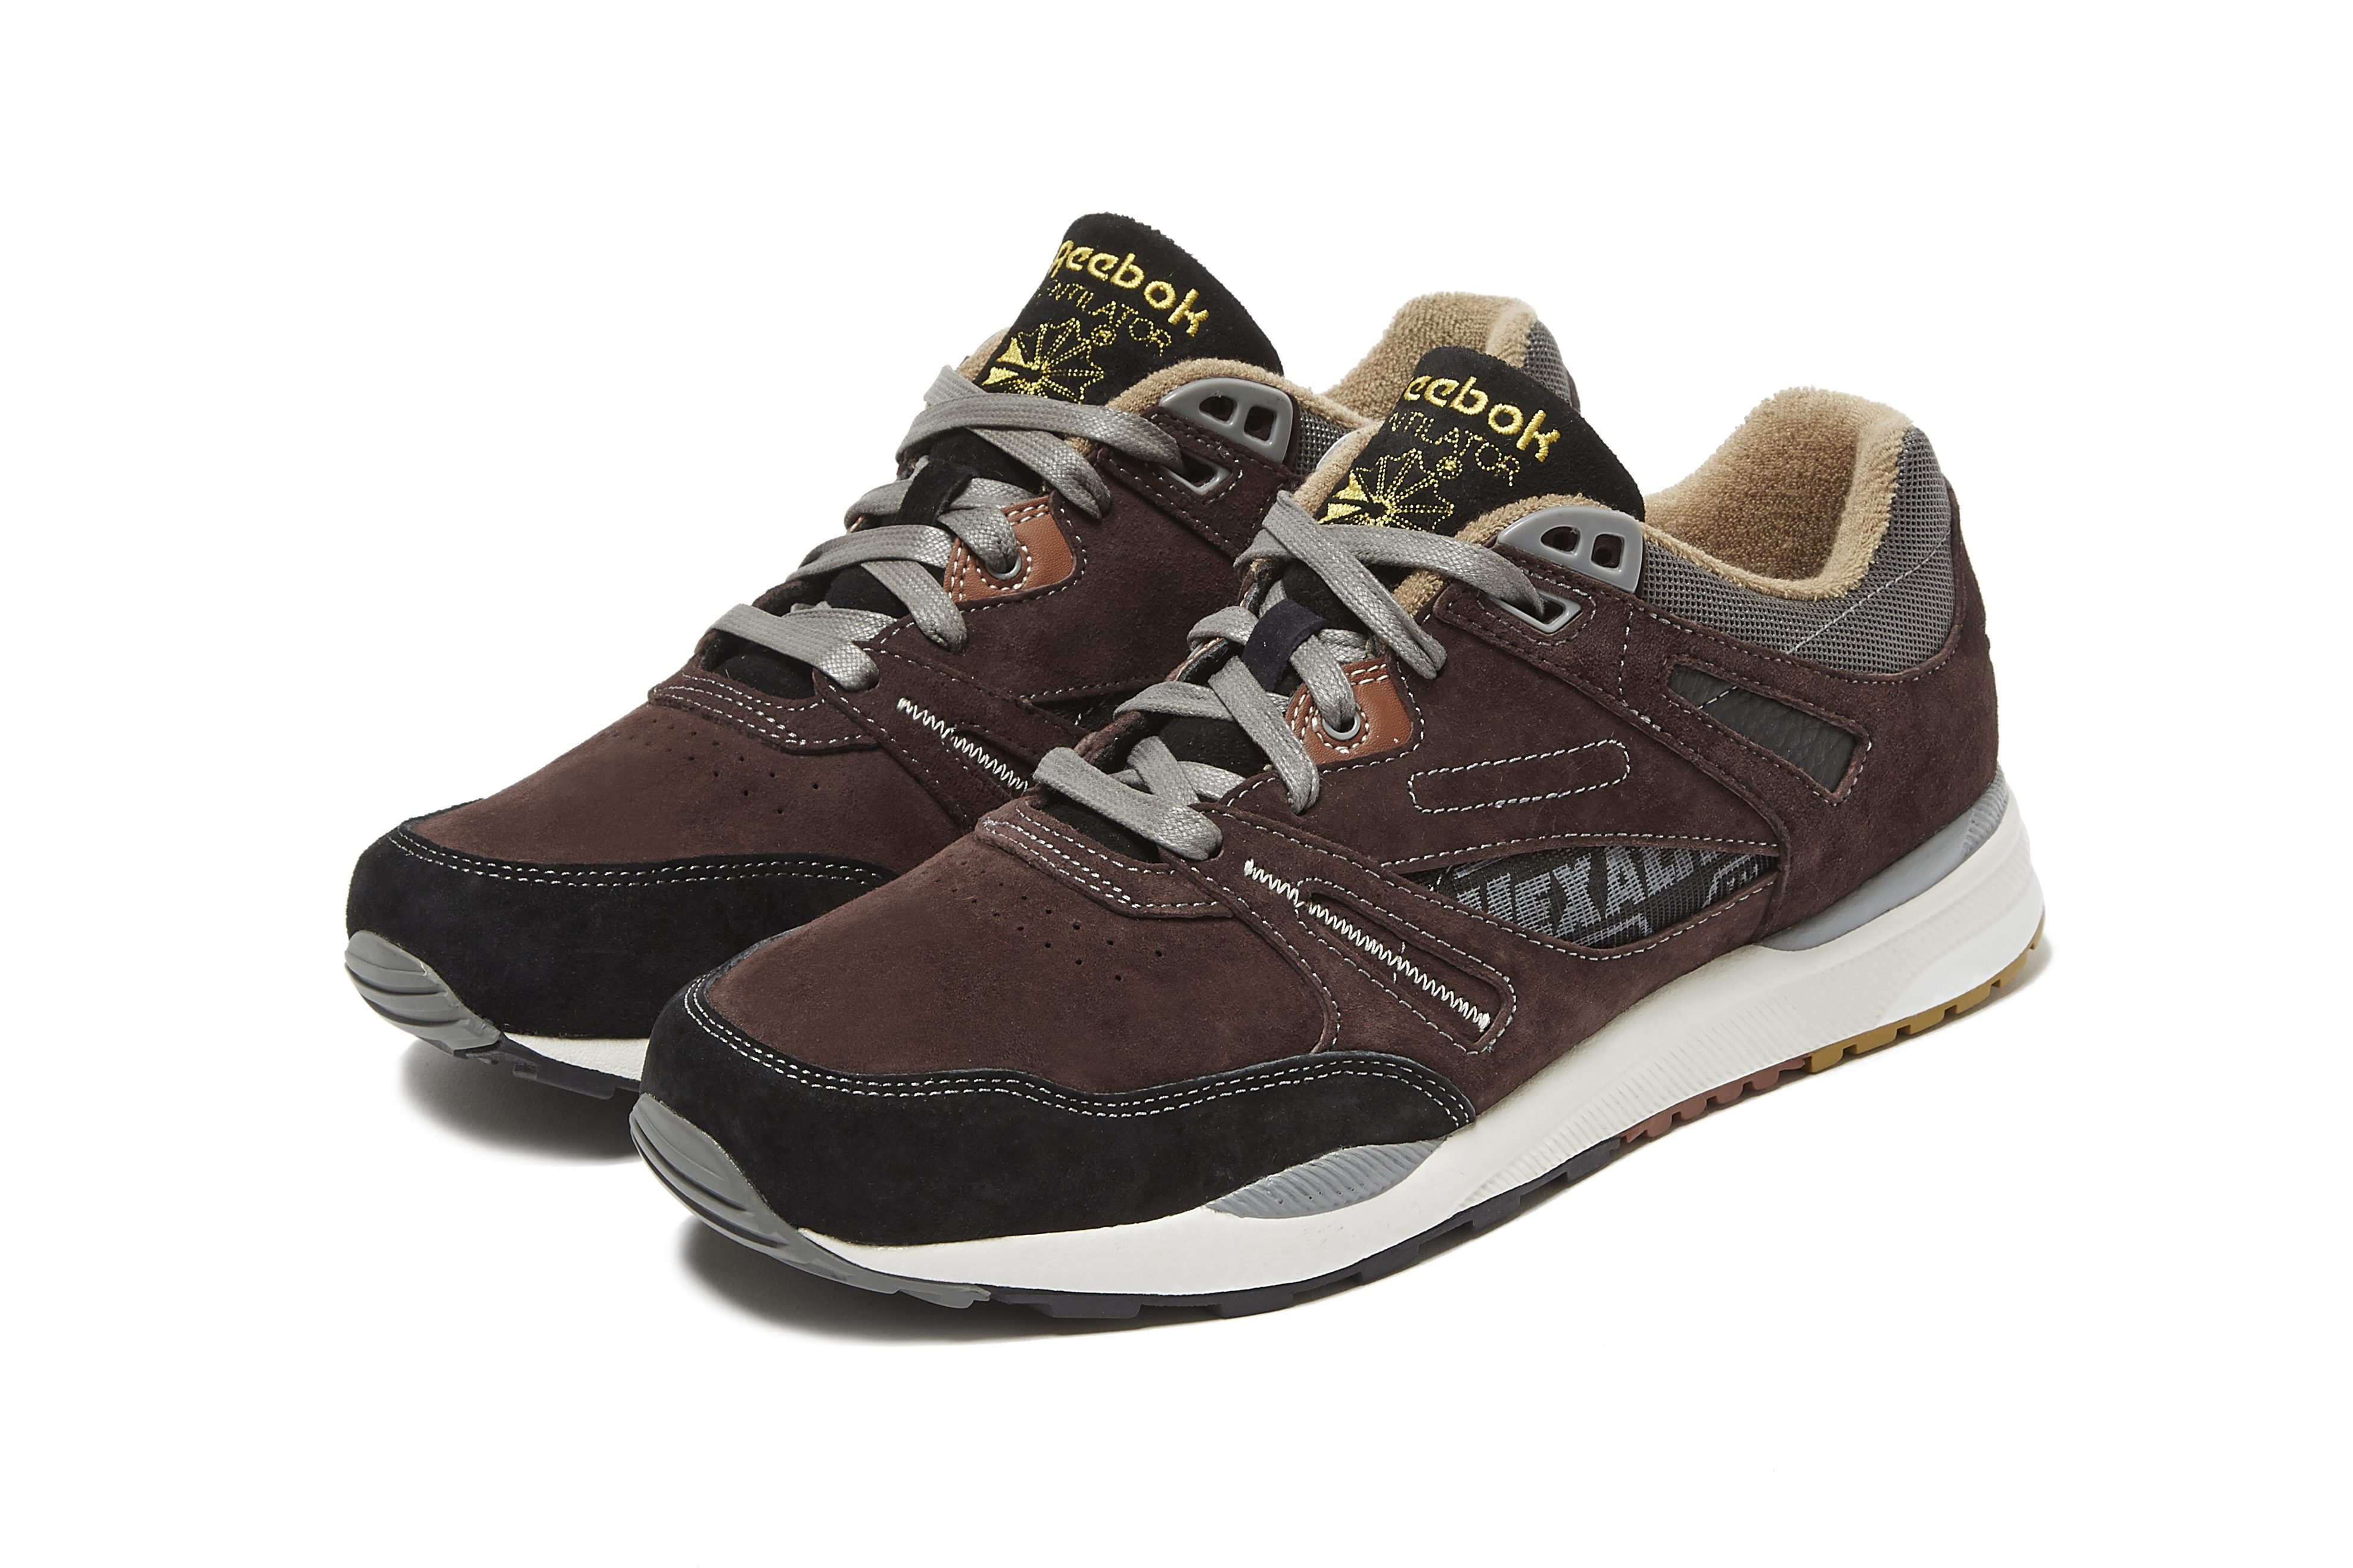 cb89f063dad2 Reebok Classic x Garbstore Running Pack gives British accent to ...